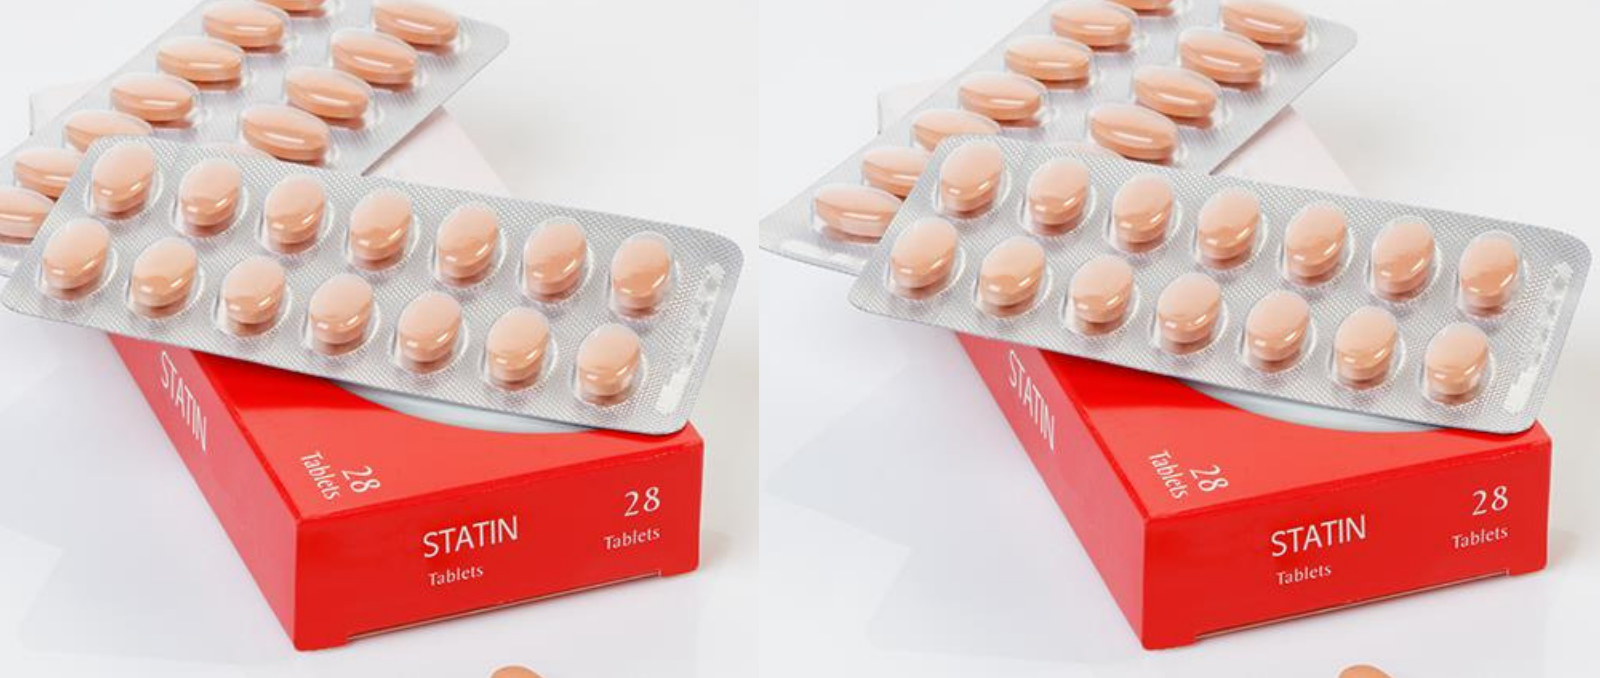 Study suggests statin use may reduce risk of ovarian cancer